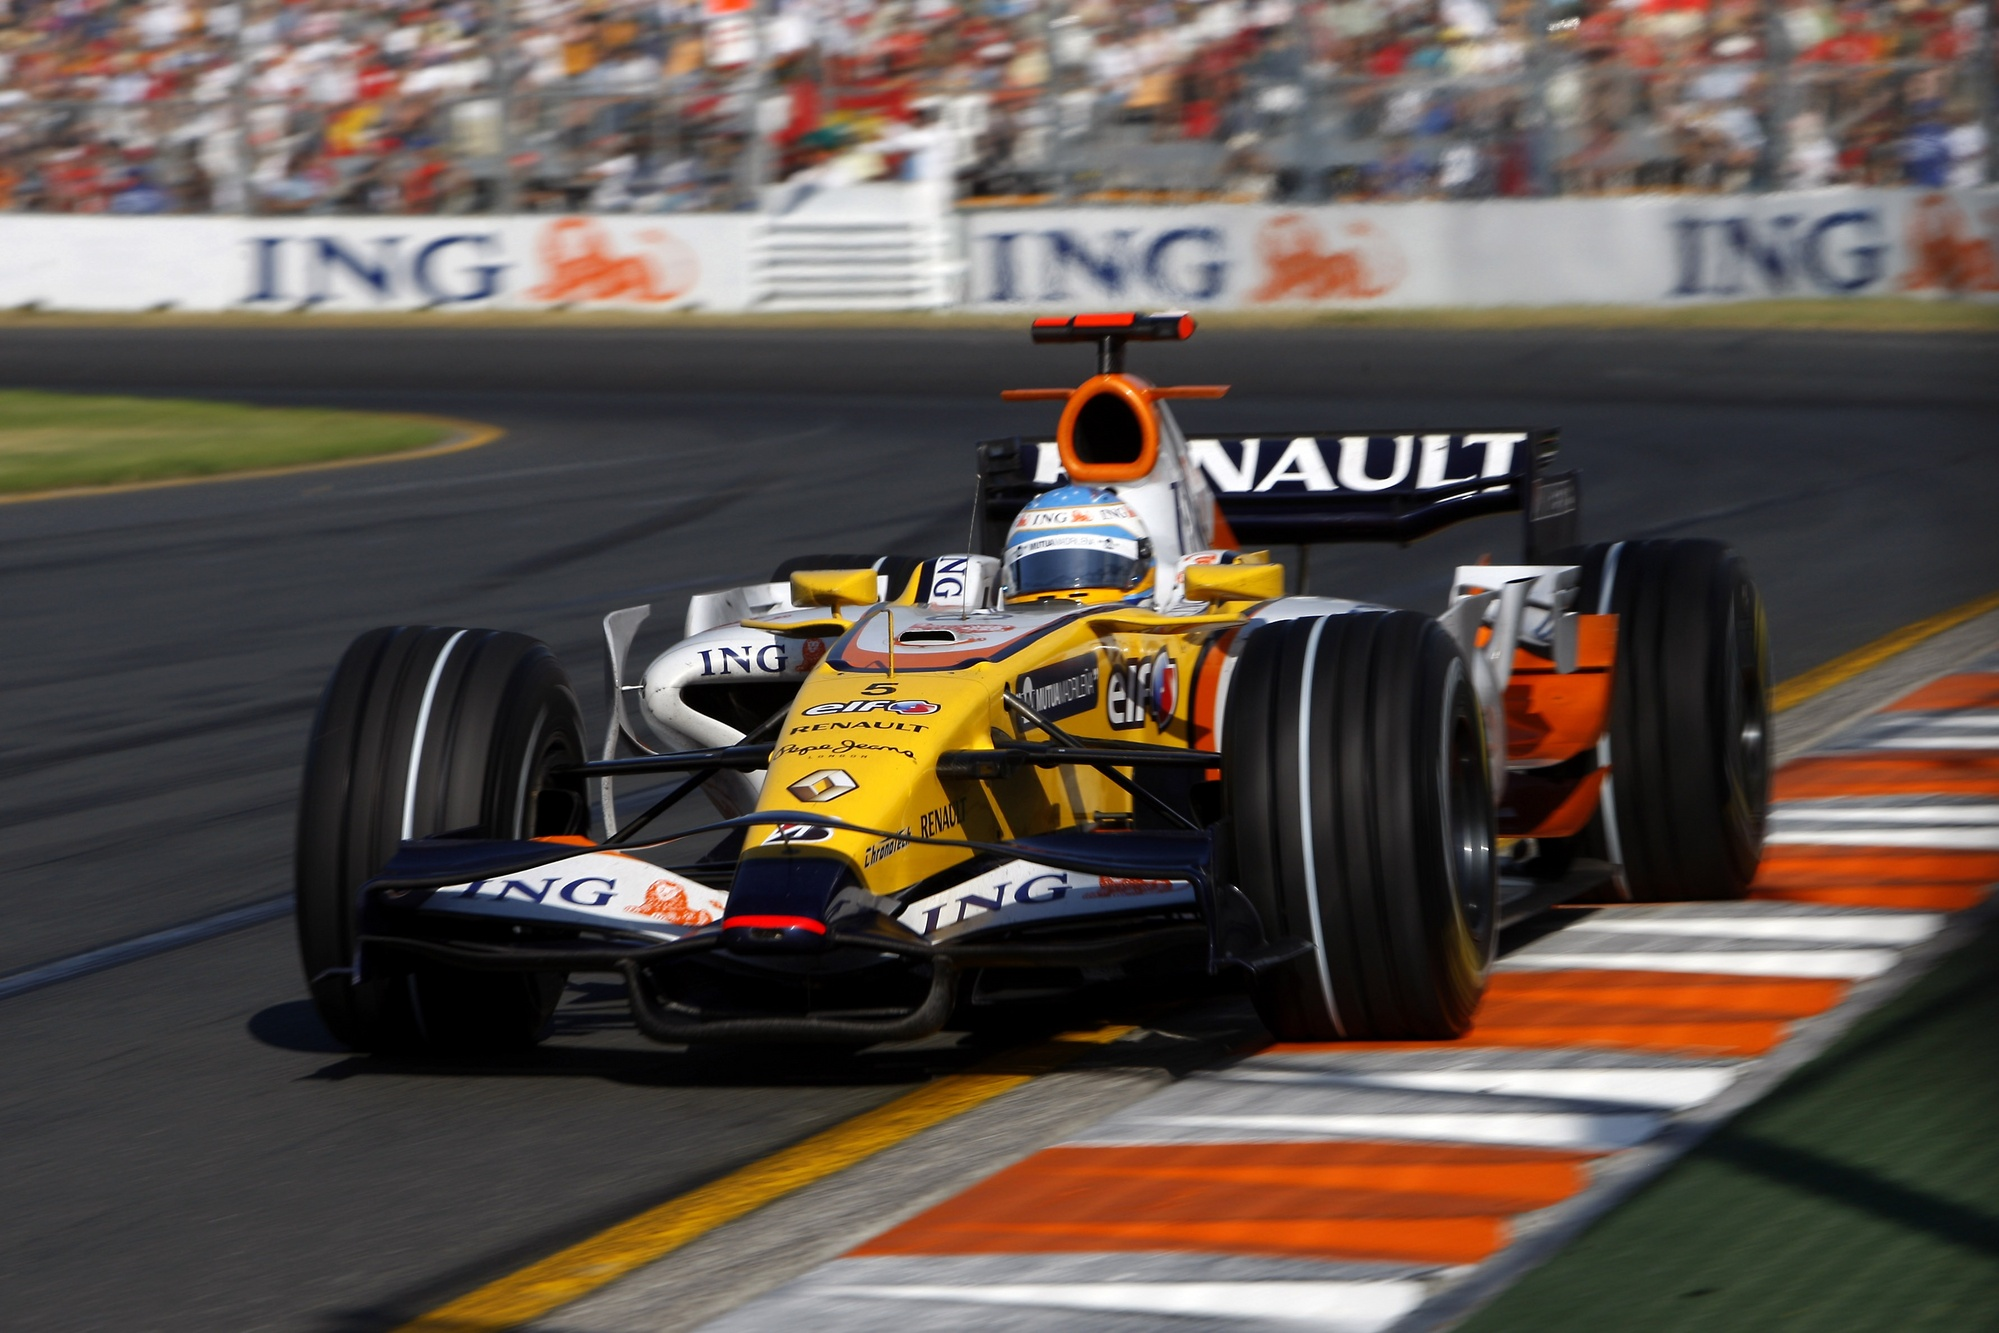 Renault r28 photo - 10